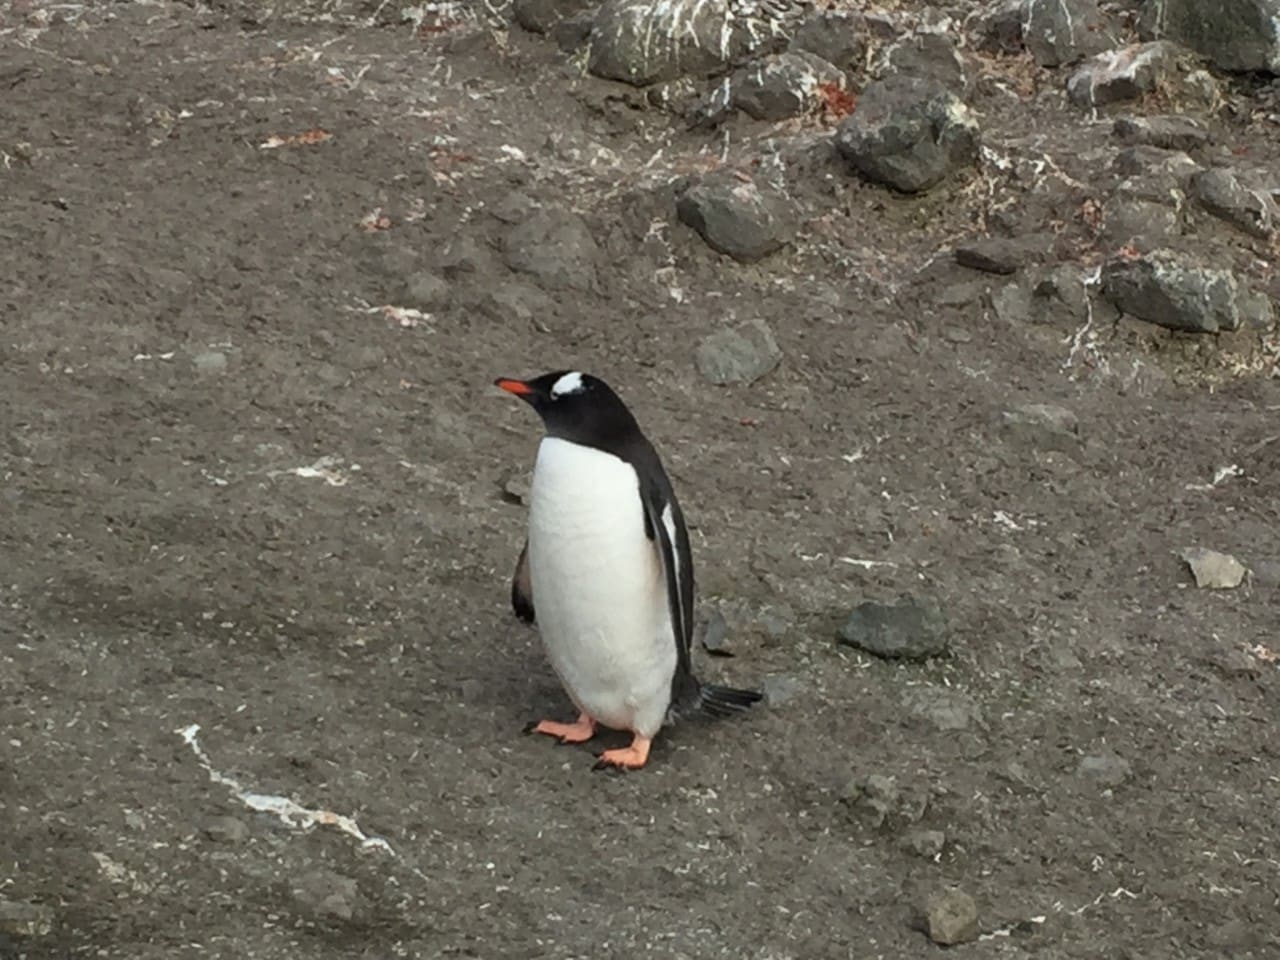 A Gentoo penguin posing at Barrentos Island.